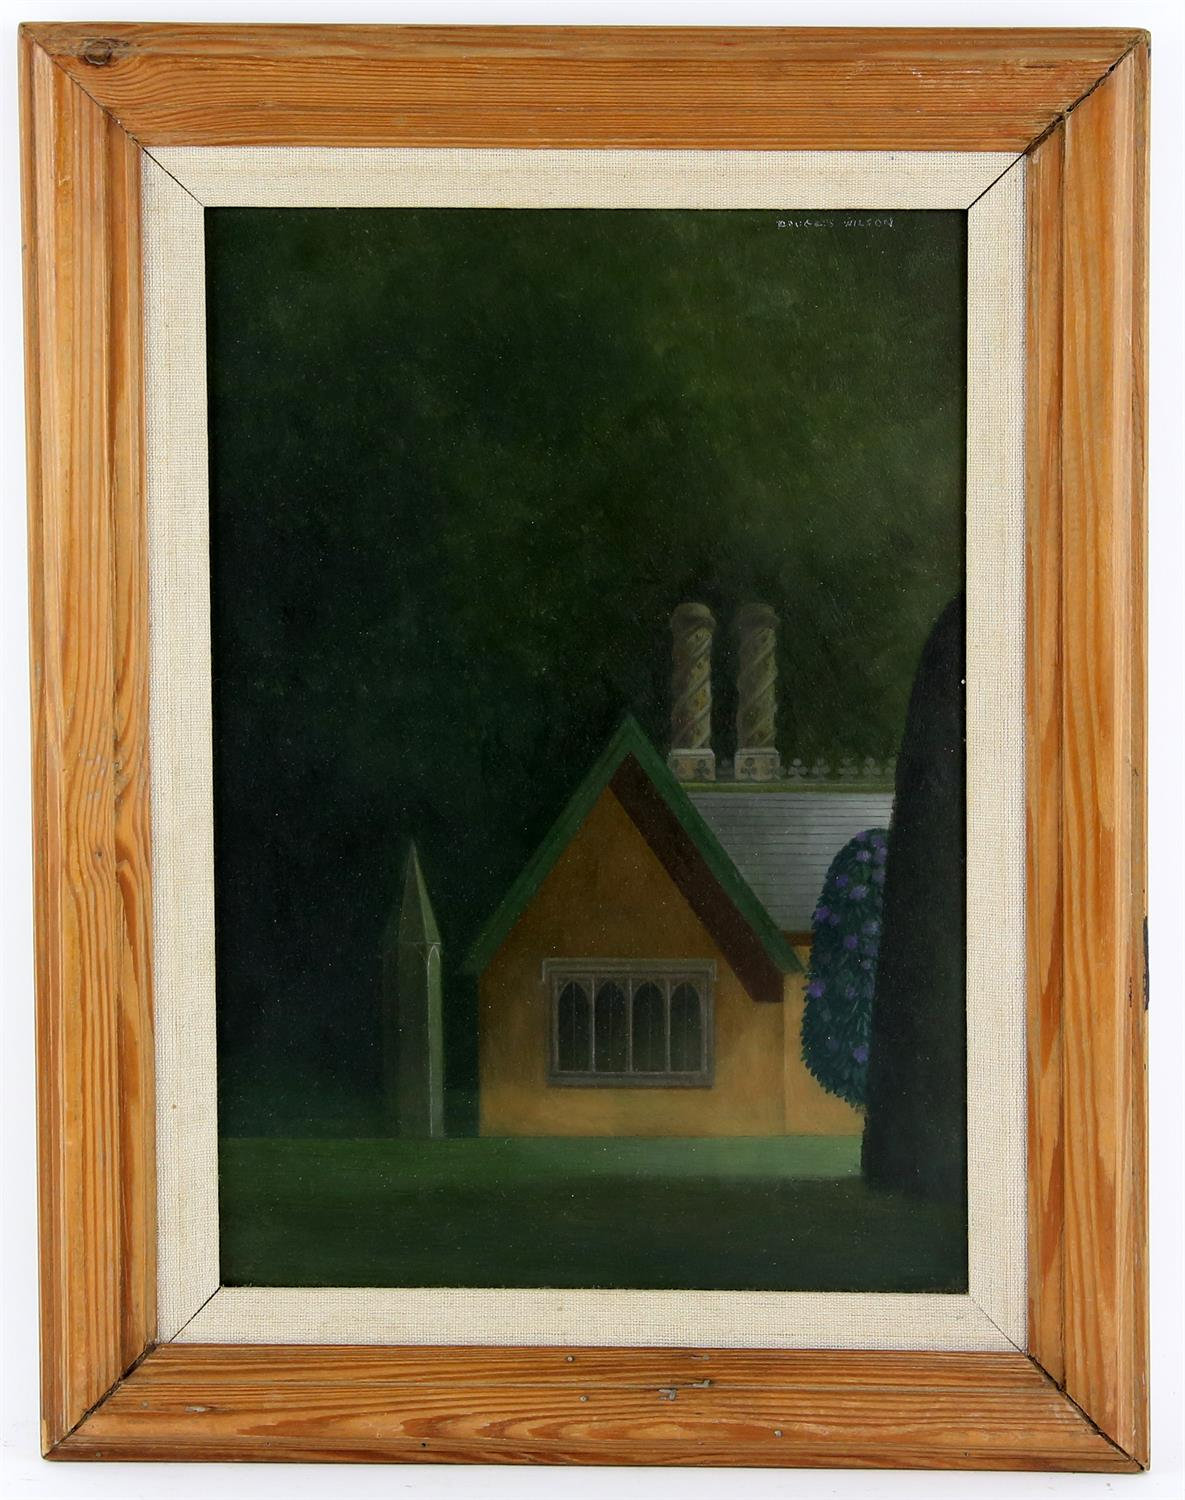 Douglas Wilson (British, b.1936). Haunted Lodge House with Rhododendrons. Oil on board, - Image 2 of 4